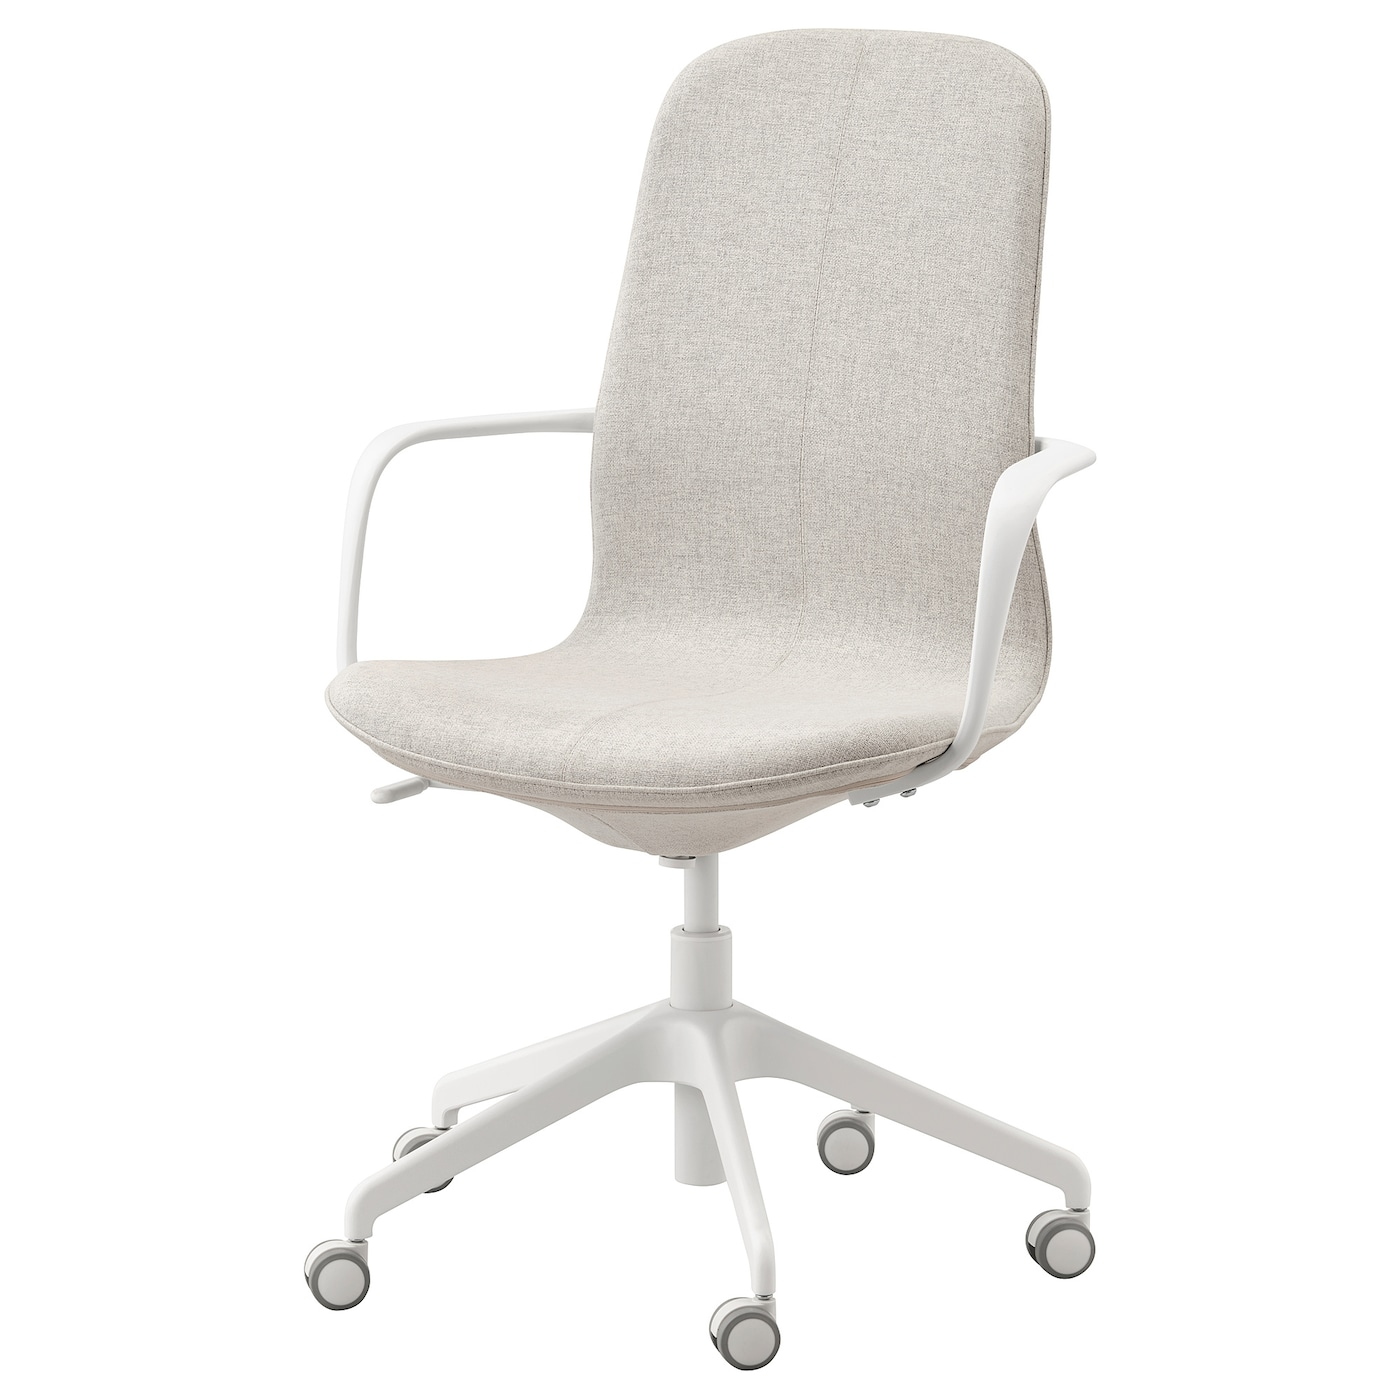 Sensational Langfjall Office Chair With Armrests Gunnared Beige White Home Remodeling Inspirations Cosmcuboardxyz